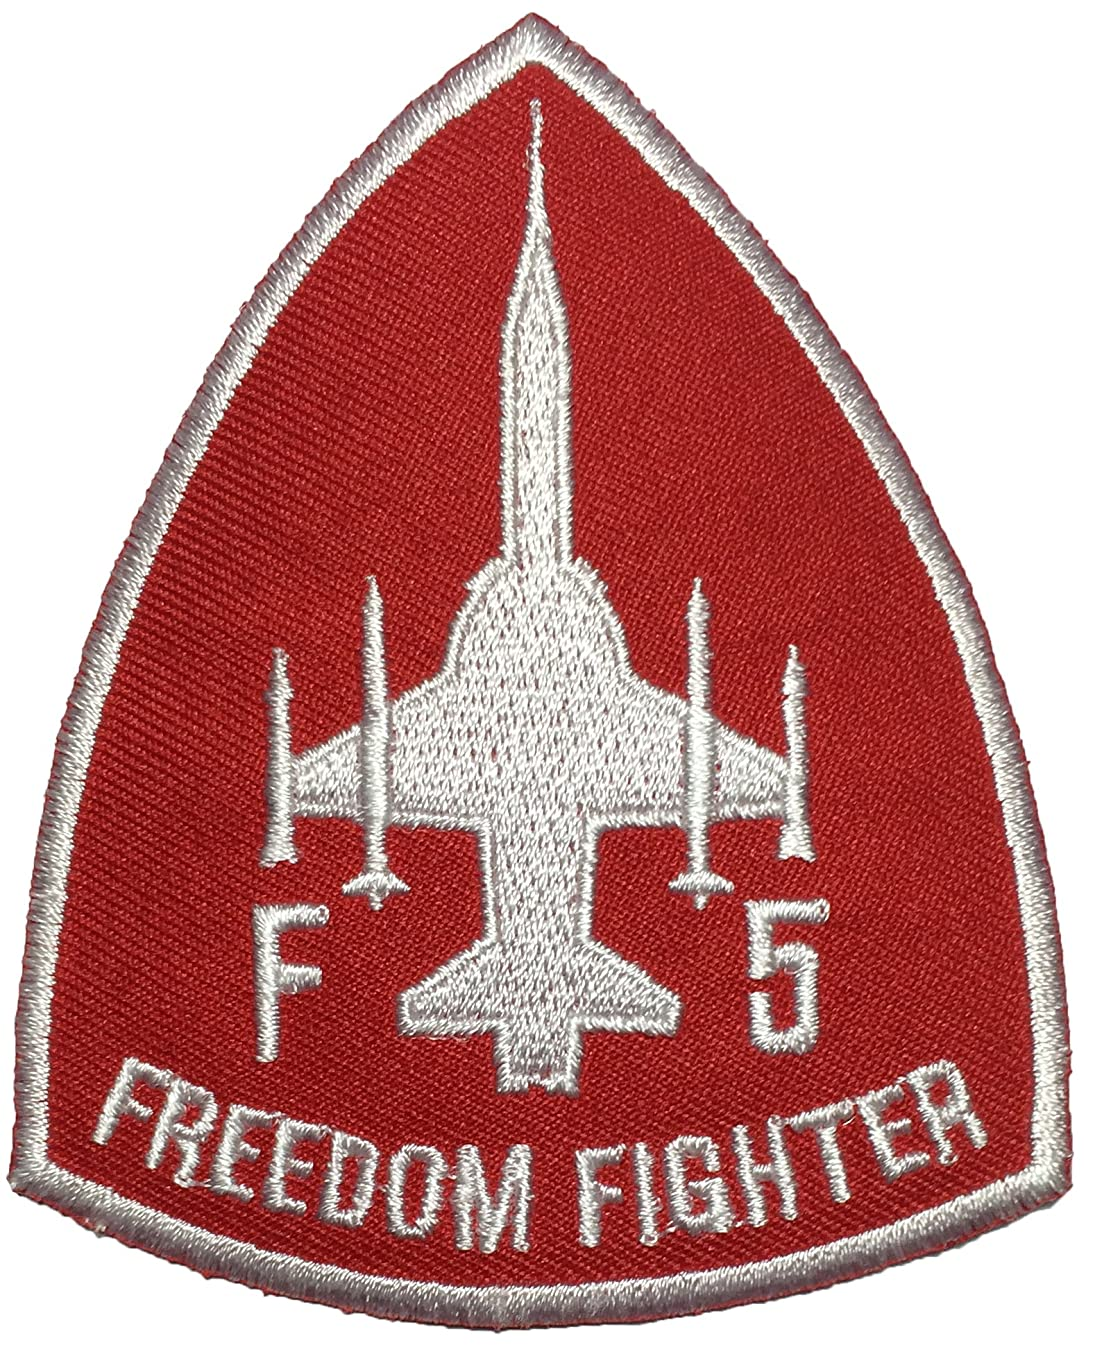 Papapatch F-5 Freedom Fighter Tiger II Embroidered Applique Sewing Iron on Patch - Red (F5-RD)